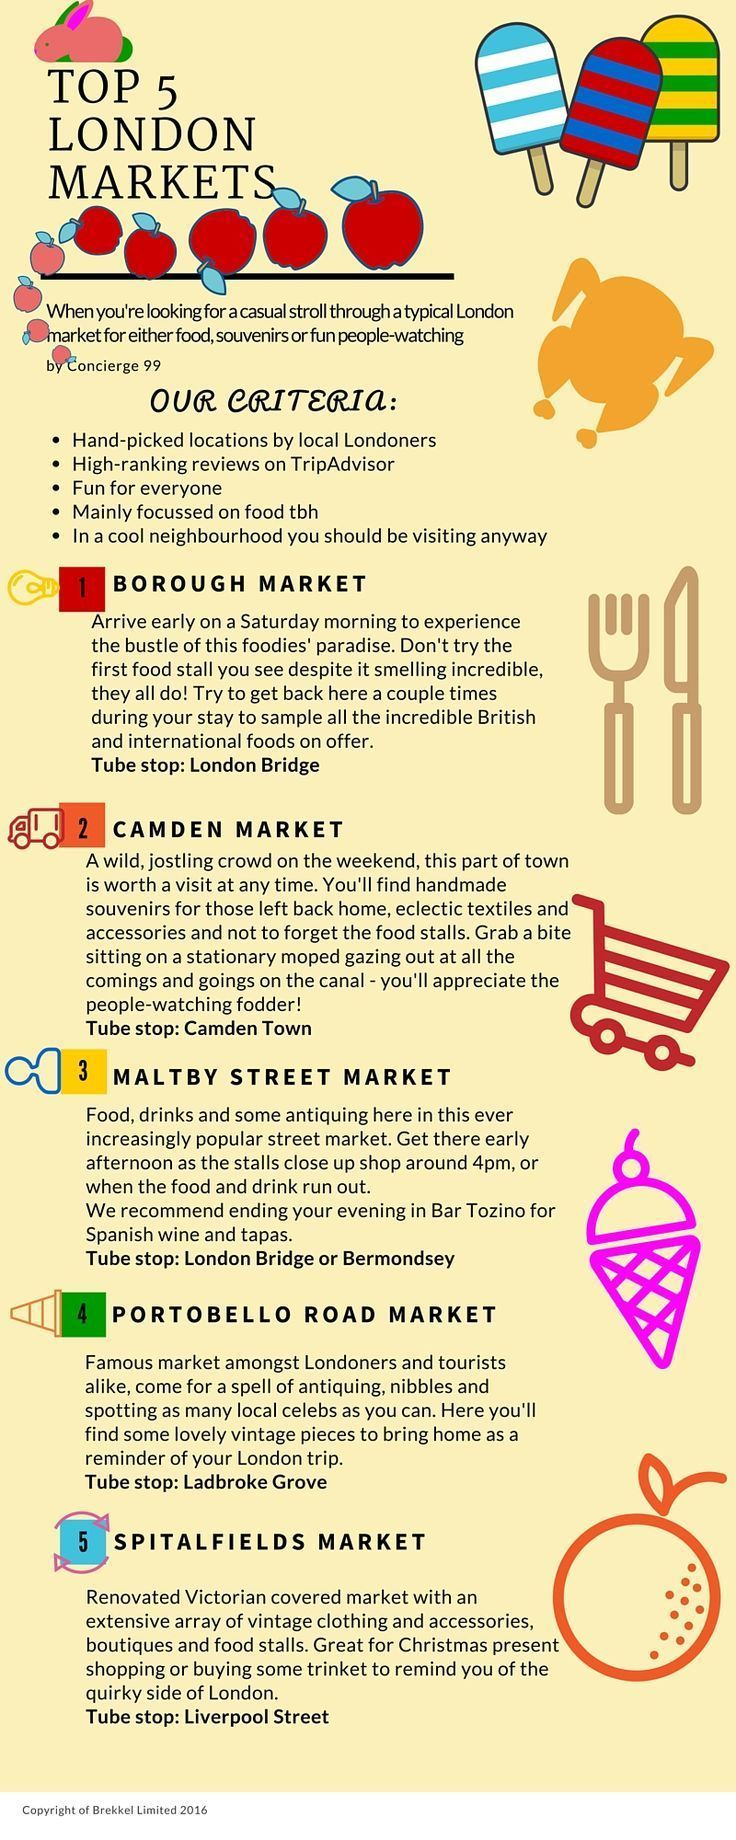 When you're looking for a casual stroll through a typical London market for either food, souvenirs or fun people-watching. Top 5 Guide Best Markets in London Best Things to Do in London Best Things to See in London Best of Where to Go in London